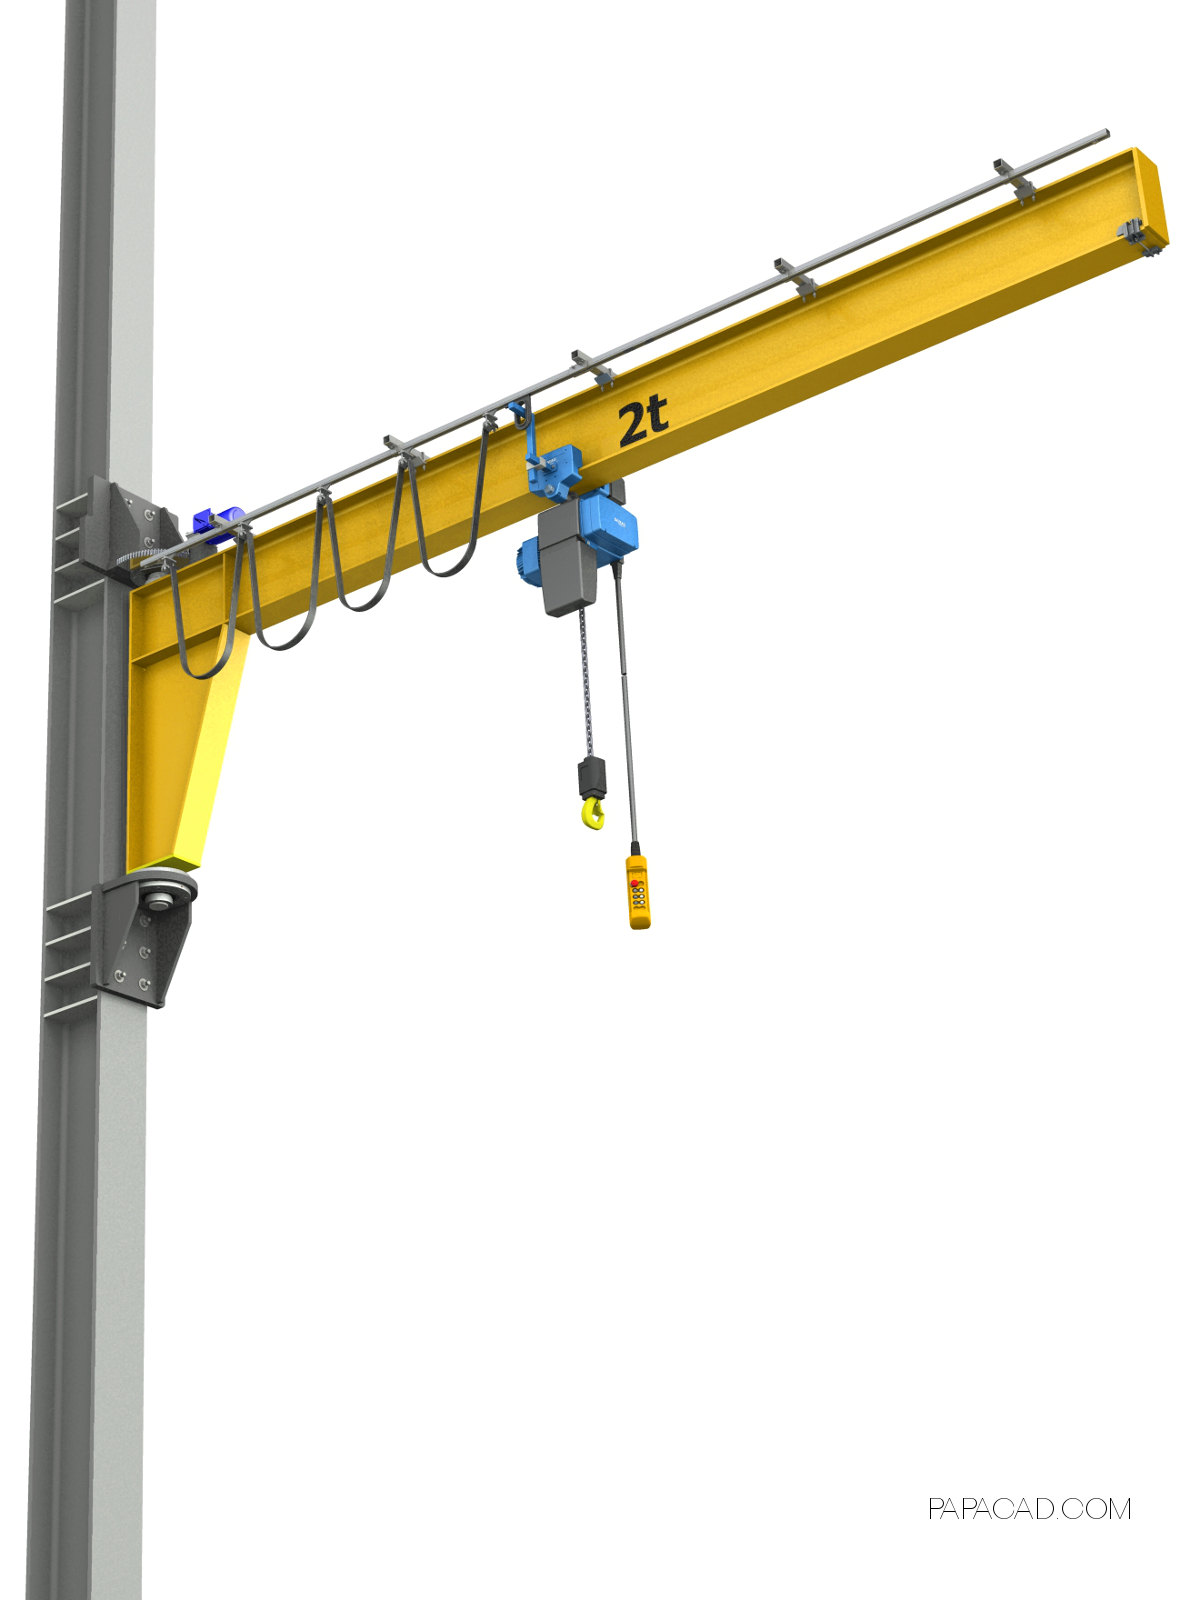 Jib Crane Testing : Jib crane training manual fortis construction a